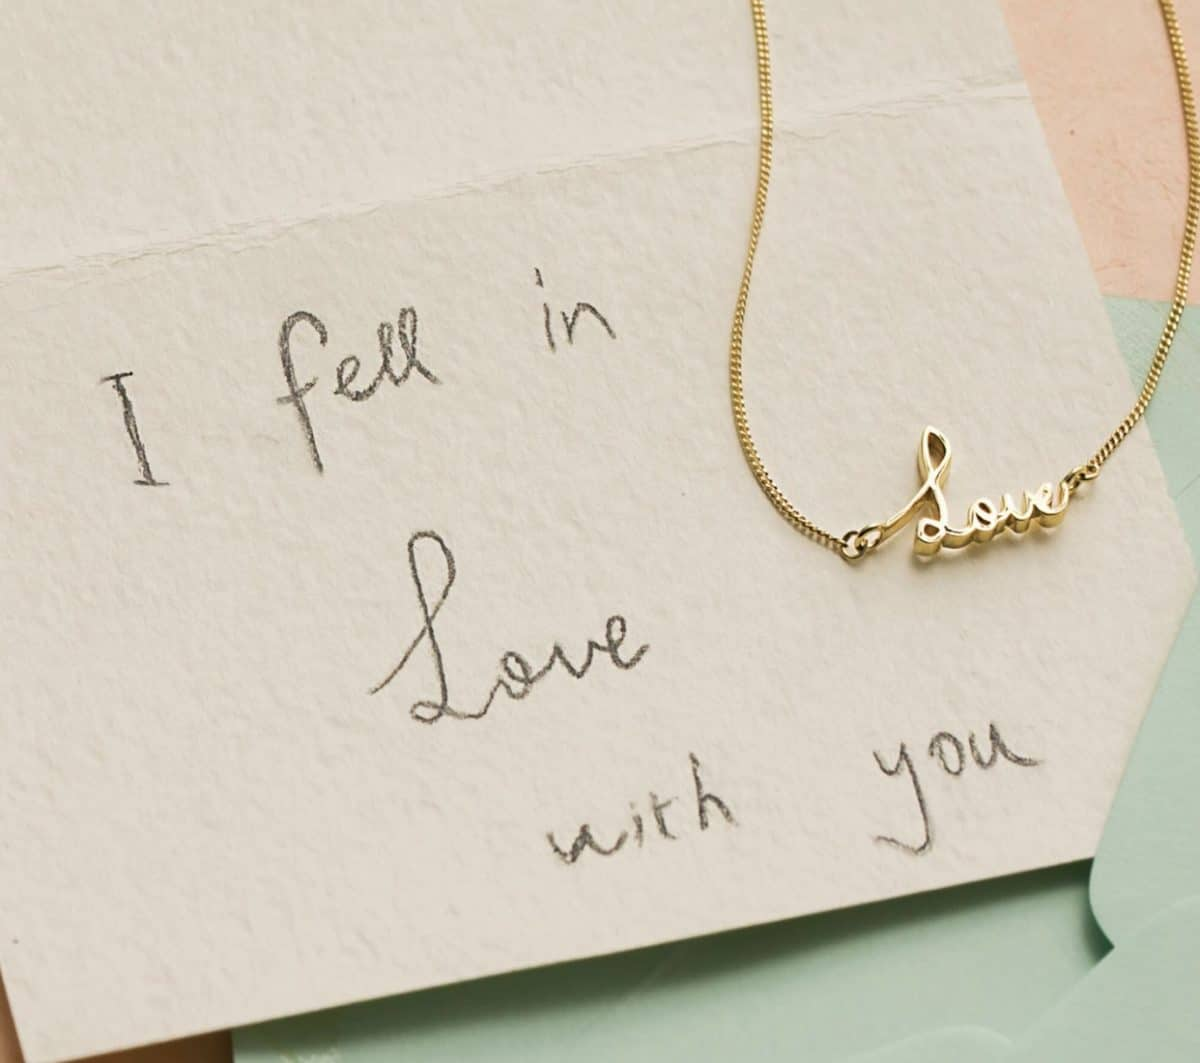 Best gift ideas for her of a capsul signature necklace